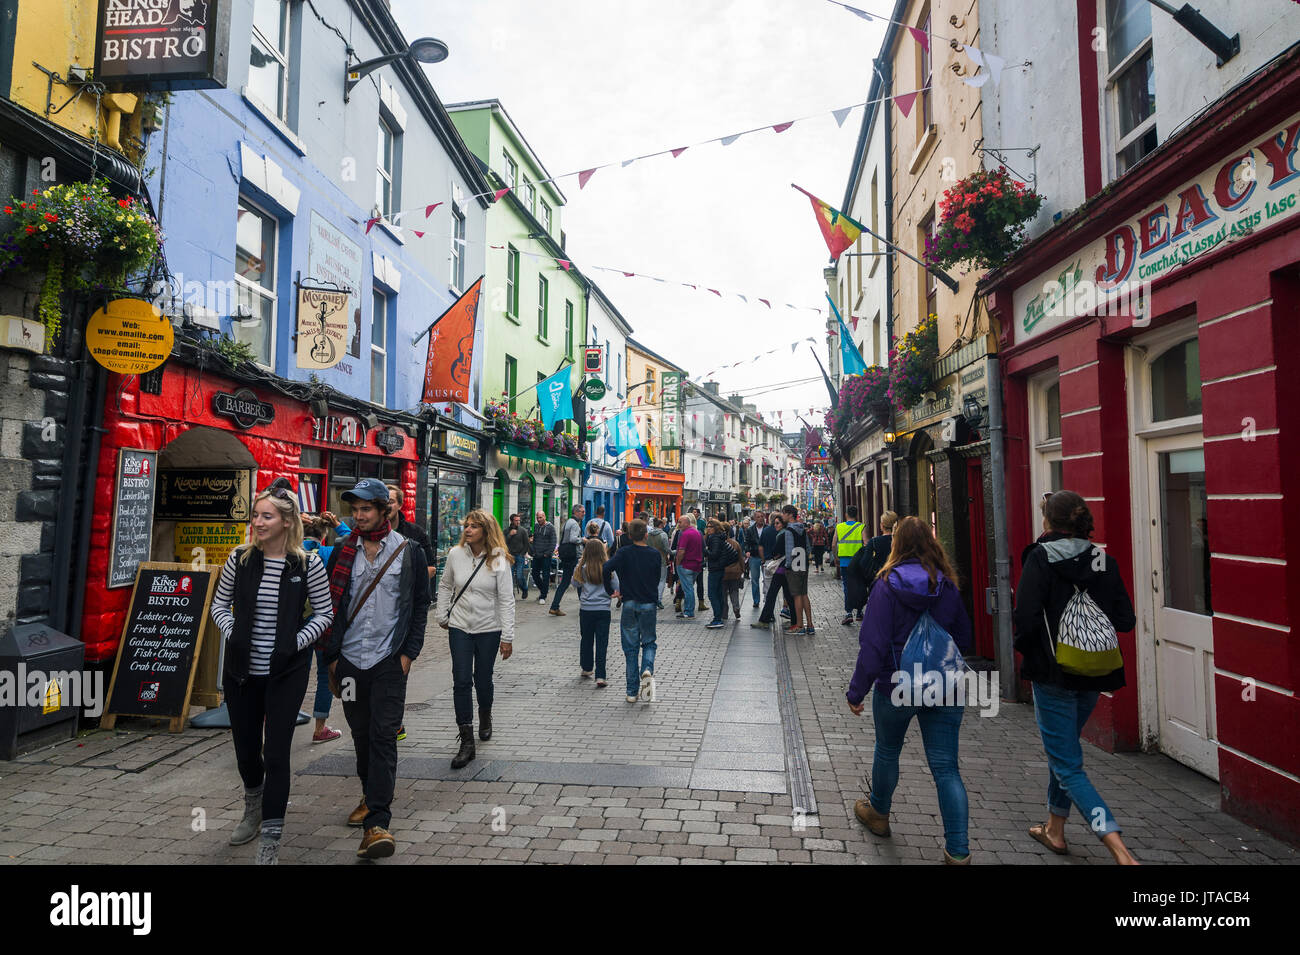 Busy pedestrian zone of Galway, County Galway, Connacht, Republic of Ireland, Europe - Stock Image